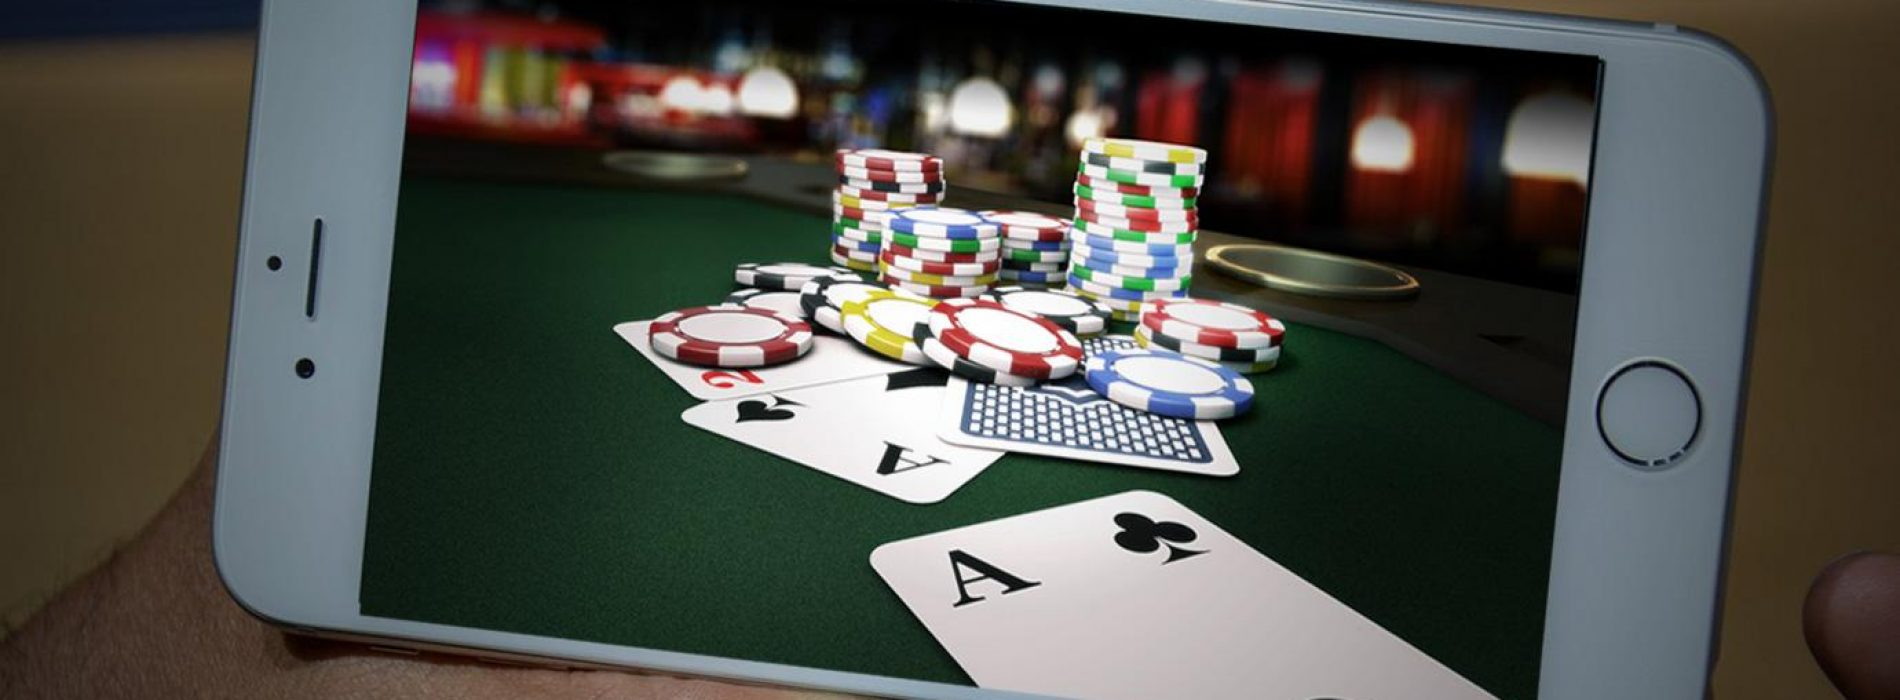 Judi online poker- a source that can make you a millionaire